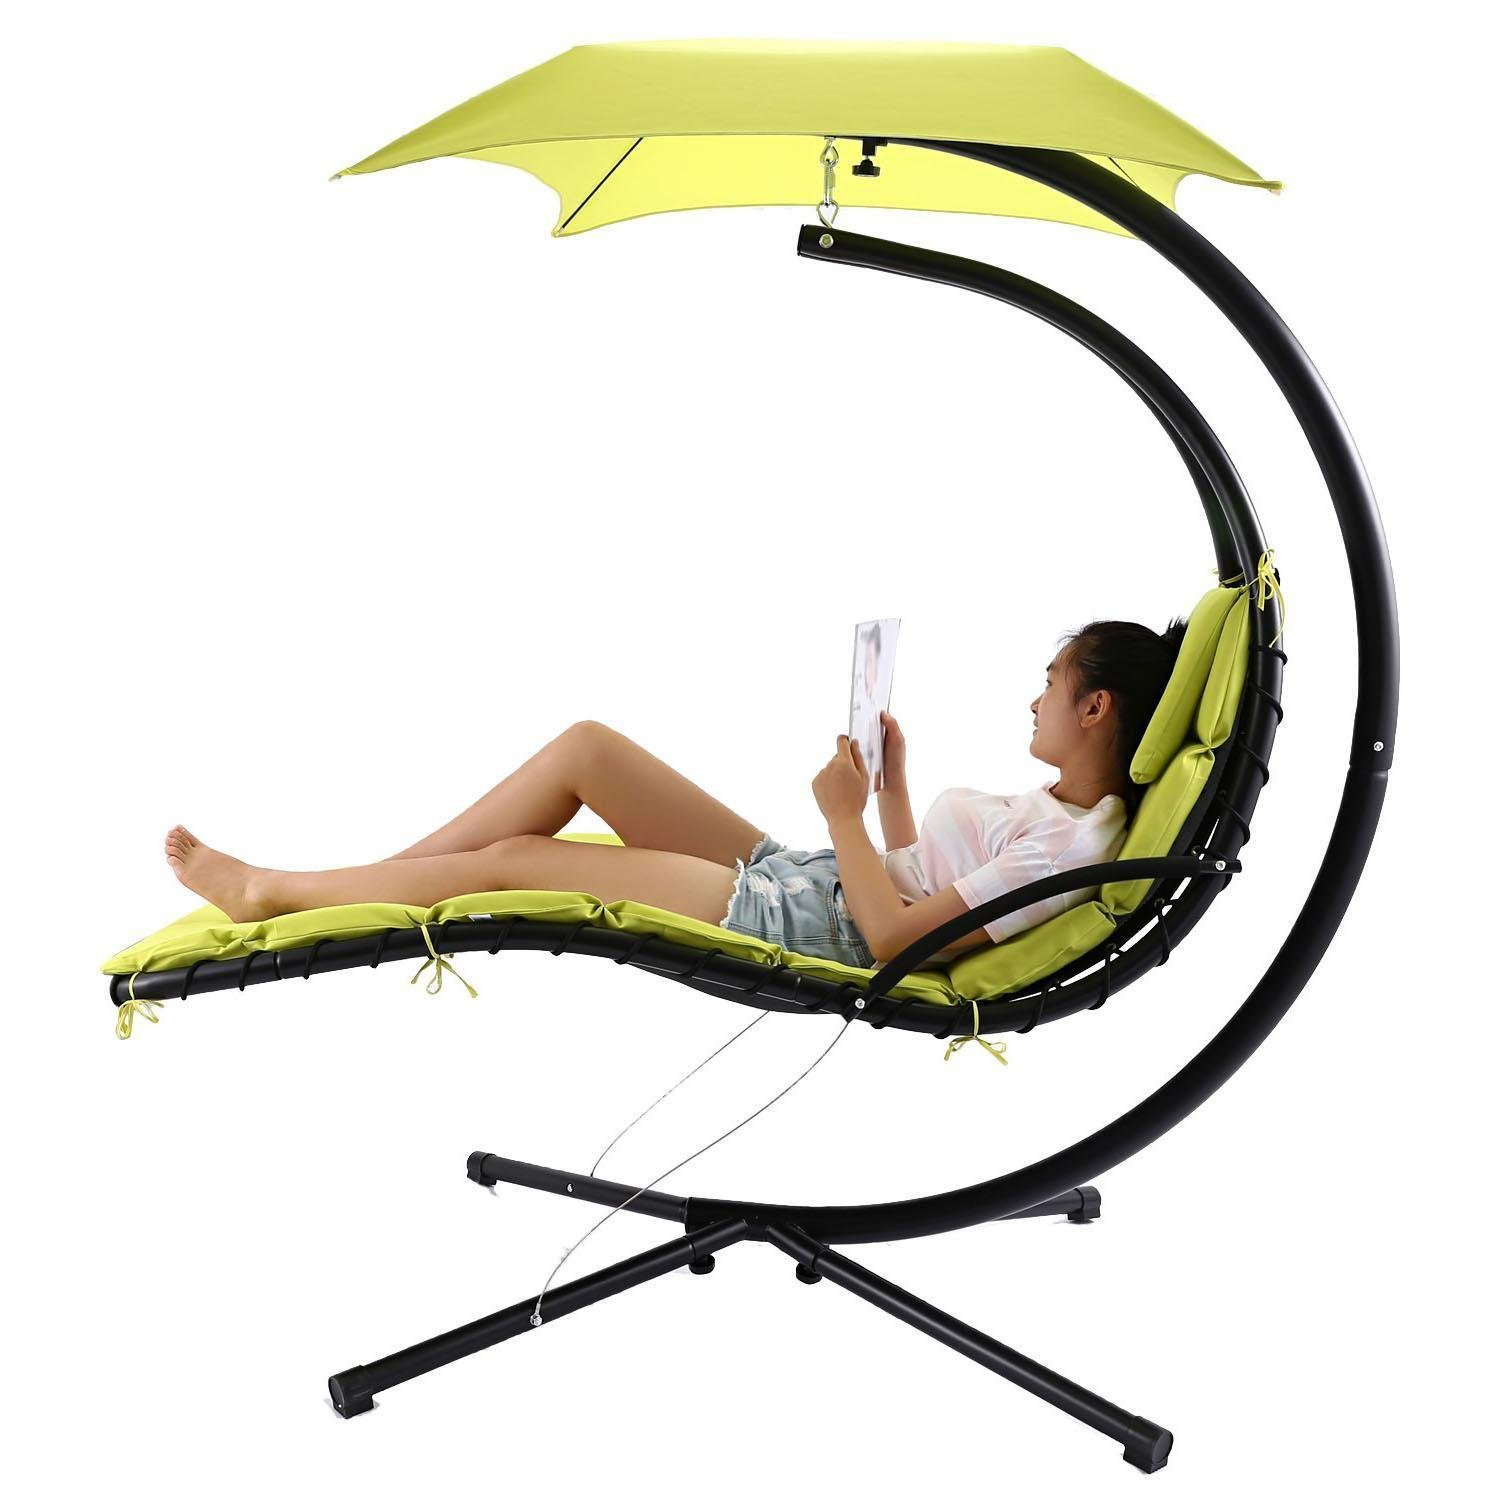 Garden Leisure Outdoor Hammock Patio Canopy Rocking Chairs Regarding Newest Amazon : Hanging Chaise Lounger Chair With Removable (View 26 of 30)